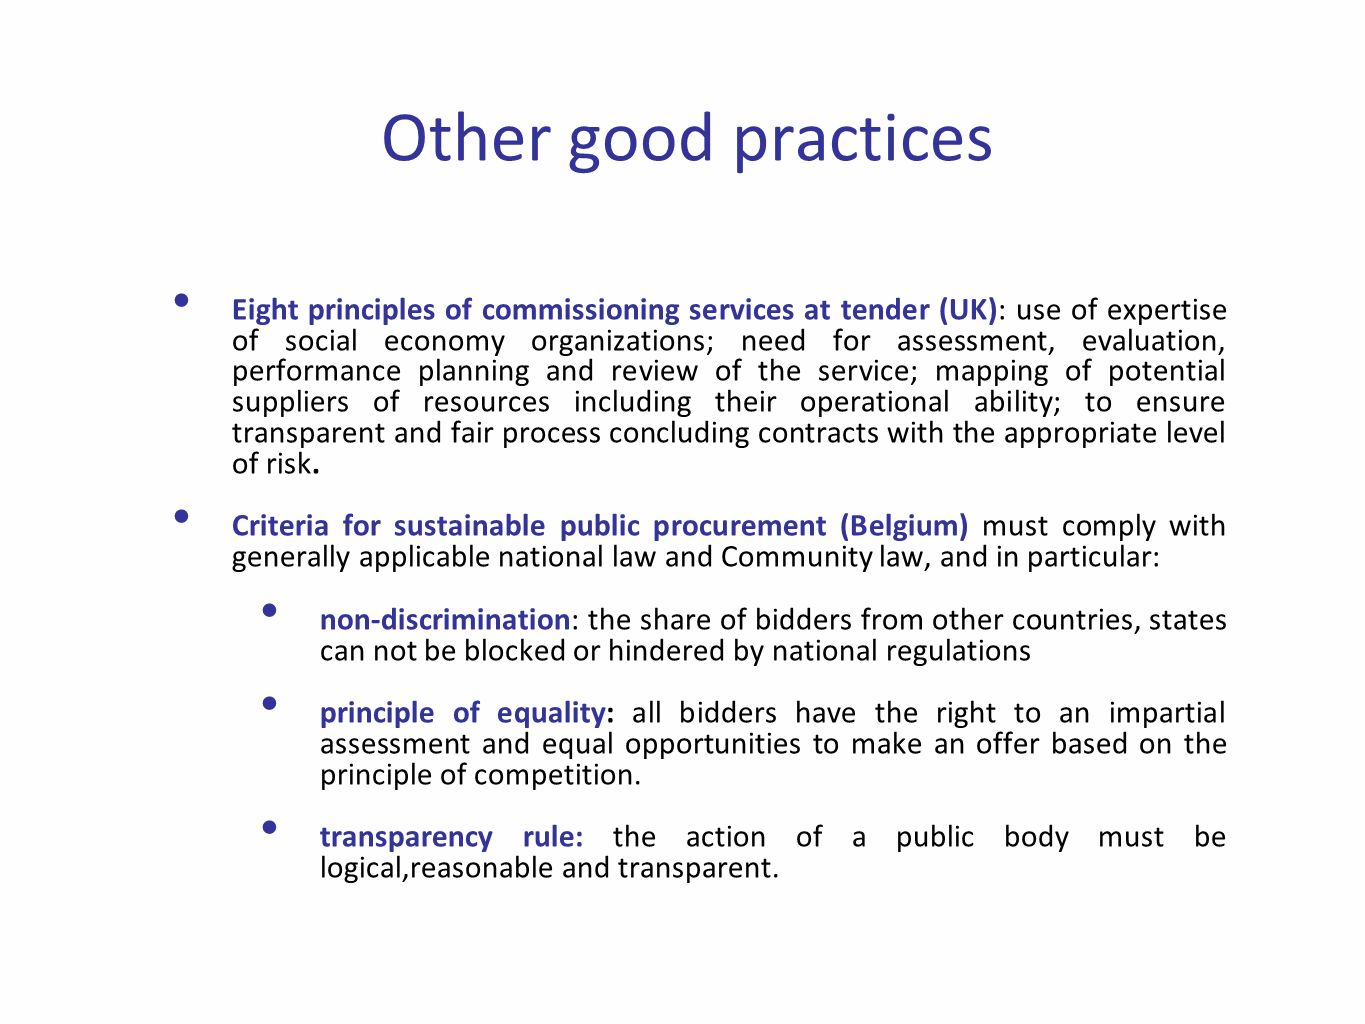 Other good practices Eight principles of commissioning services at tender (UK): use of expertise of social economy organizations; need for assessment, evaluation, performance planning and review of the service; mapping of potential suppliers of resources including their operational ability; to ensure transparent and fair process concluding contracts with the appropriate level of risk.